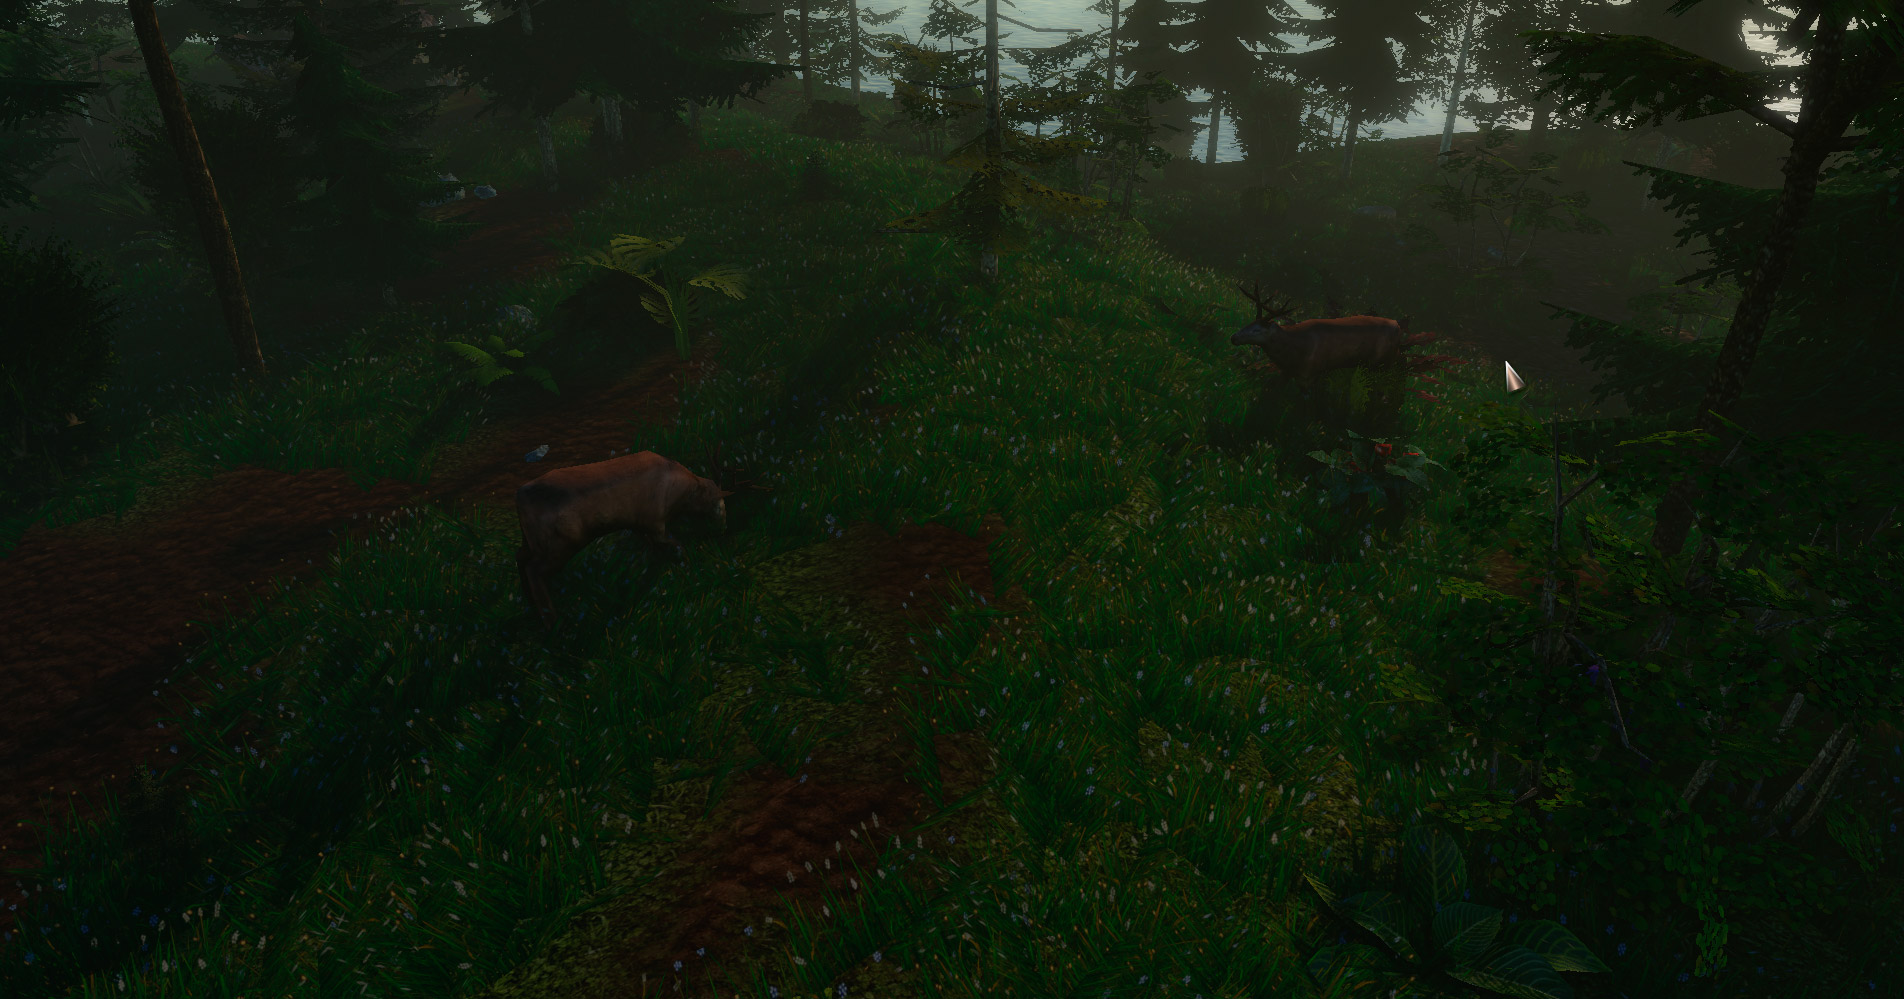 http://forest-village-game.com/wp-content/uploads/ngg_featured/Sunset-Woods.jpg